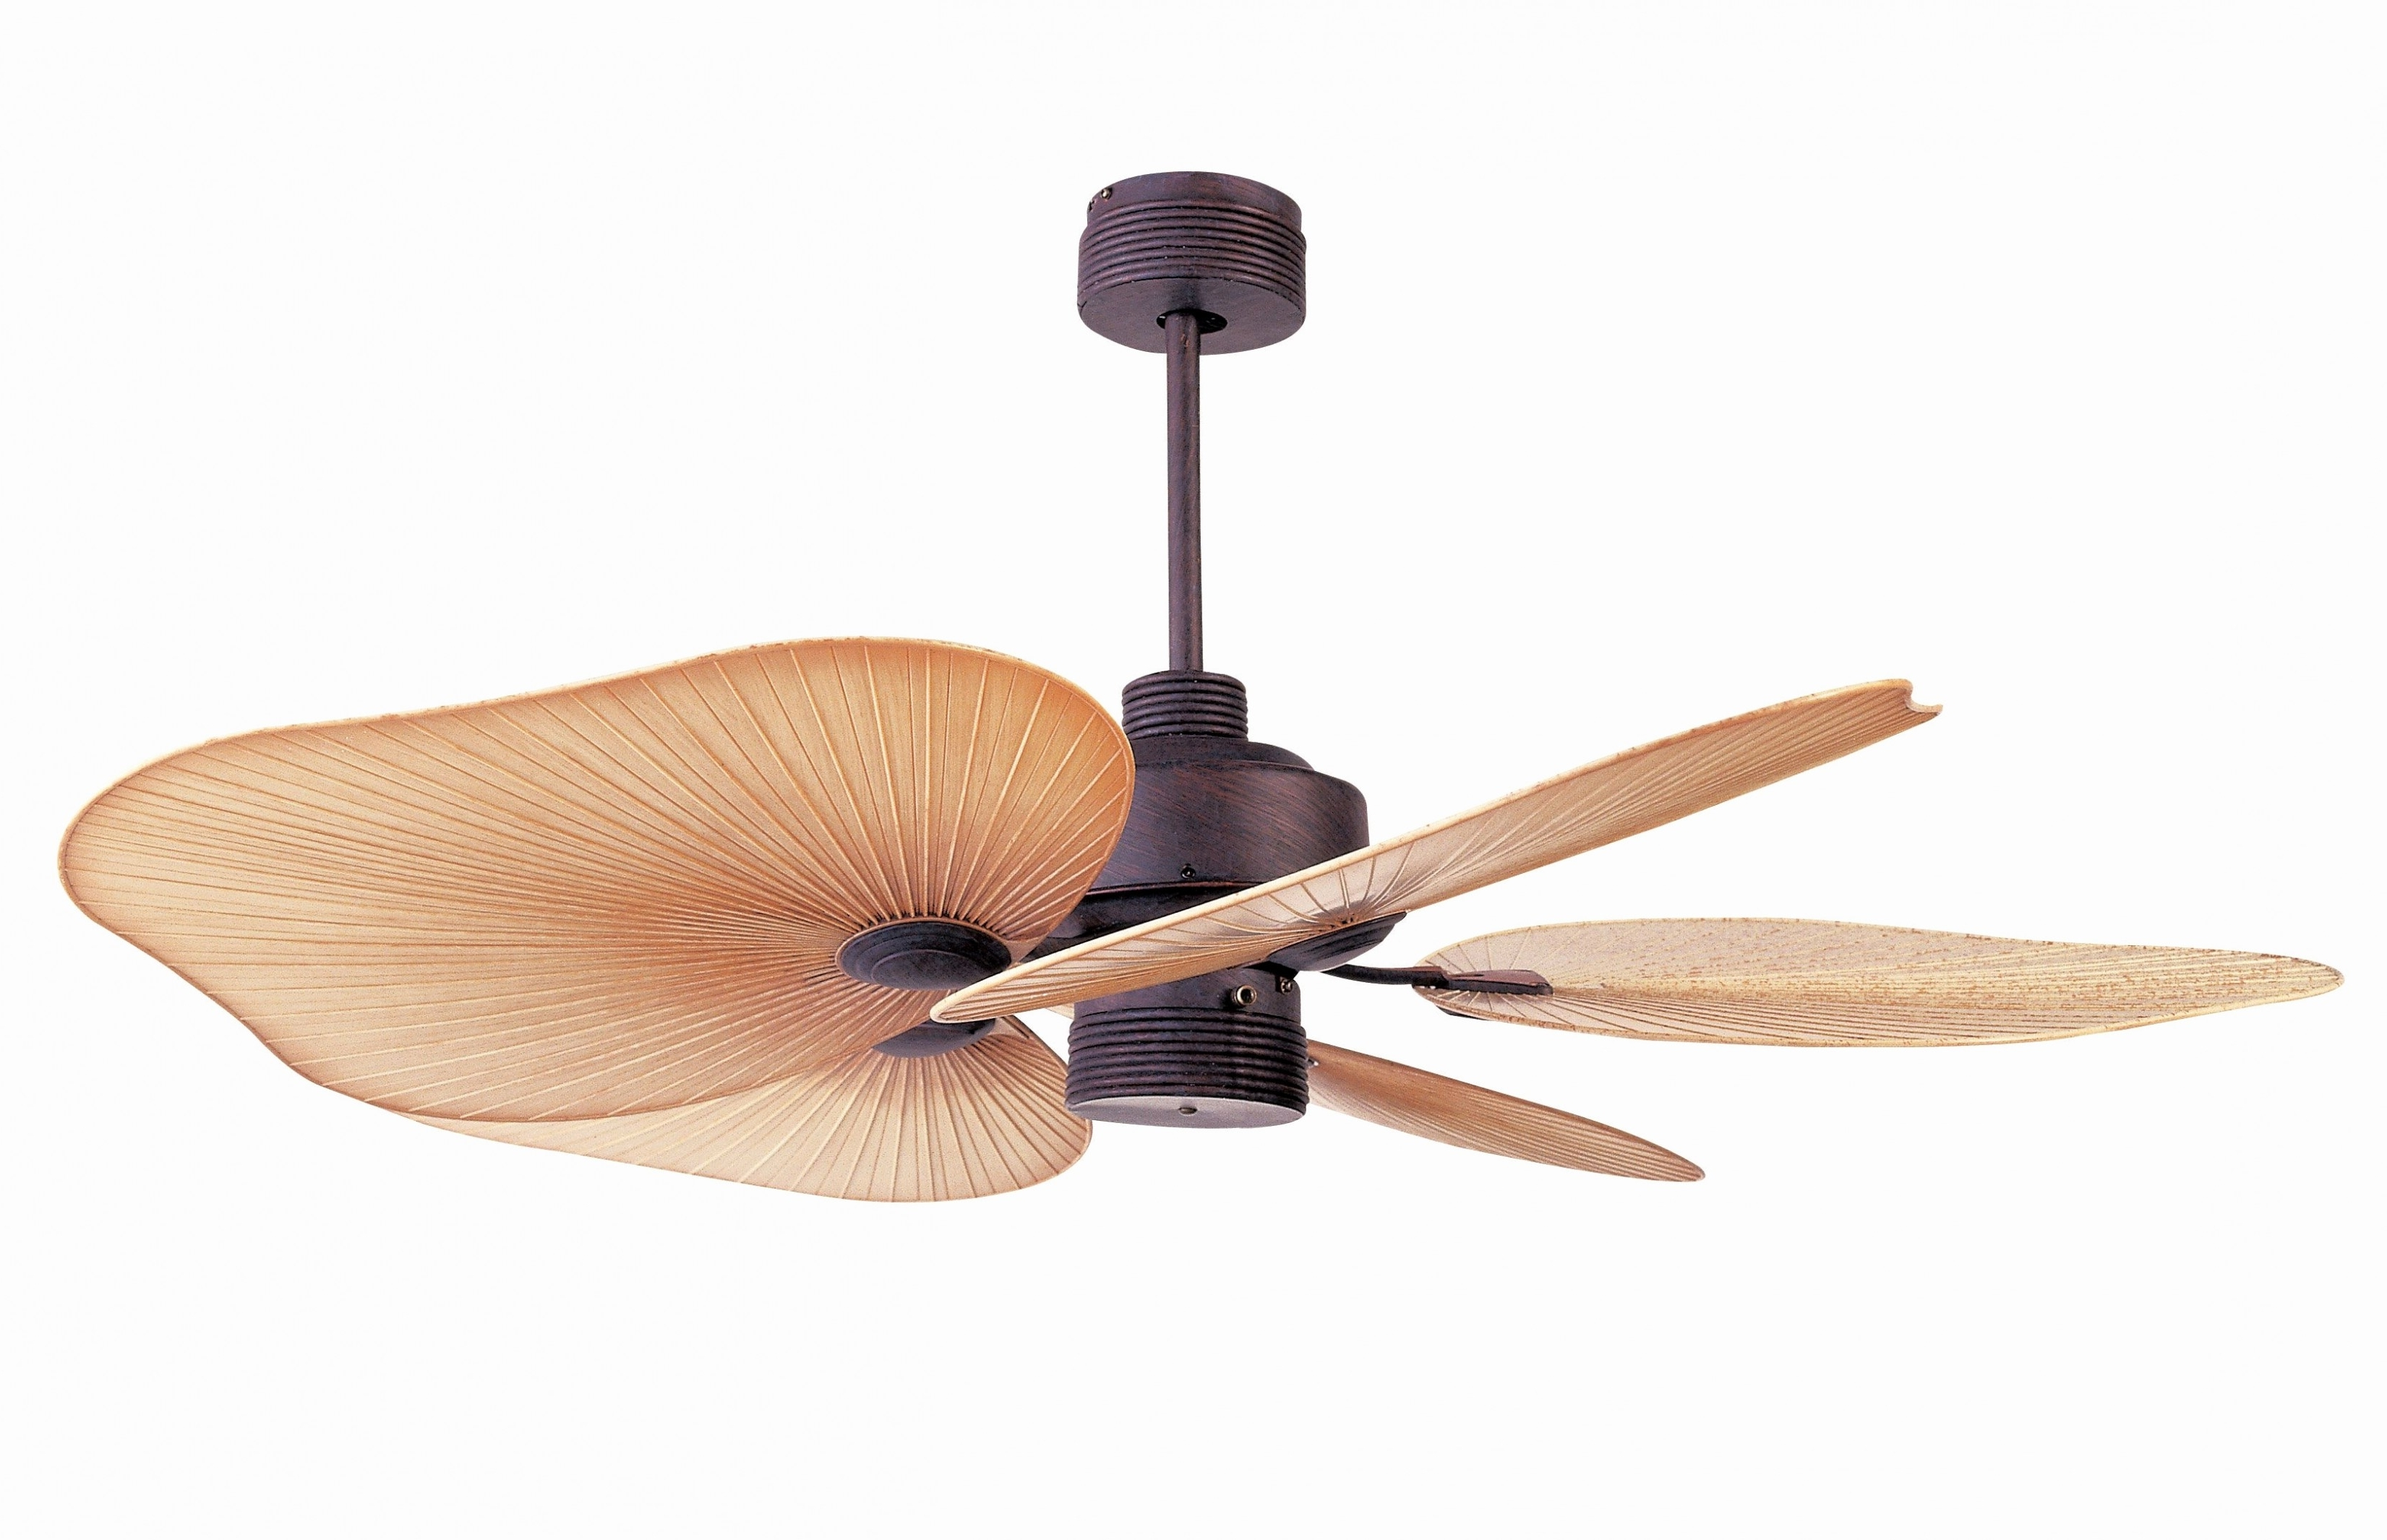 Fashionable Tropical Design Outdoor Ceiling Fans With Balancing A Ceiling Fan Fresh Tropical Ceiling Fans Ideas (Gallery 17 of 20)